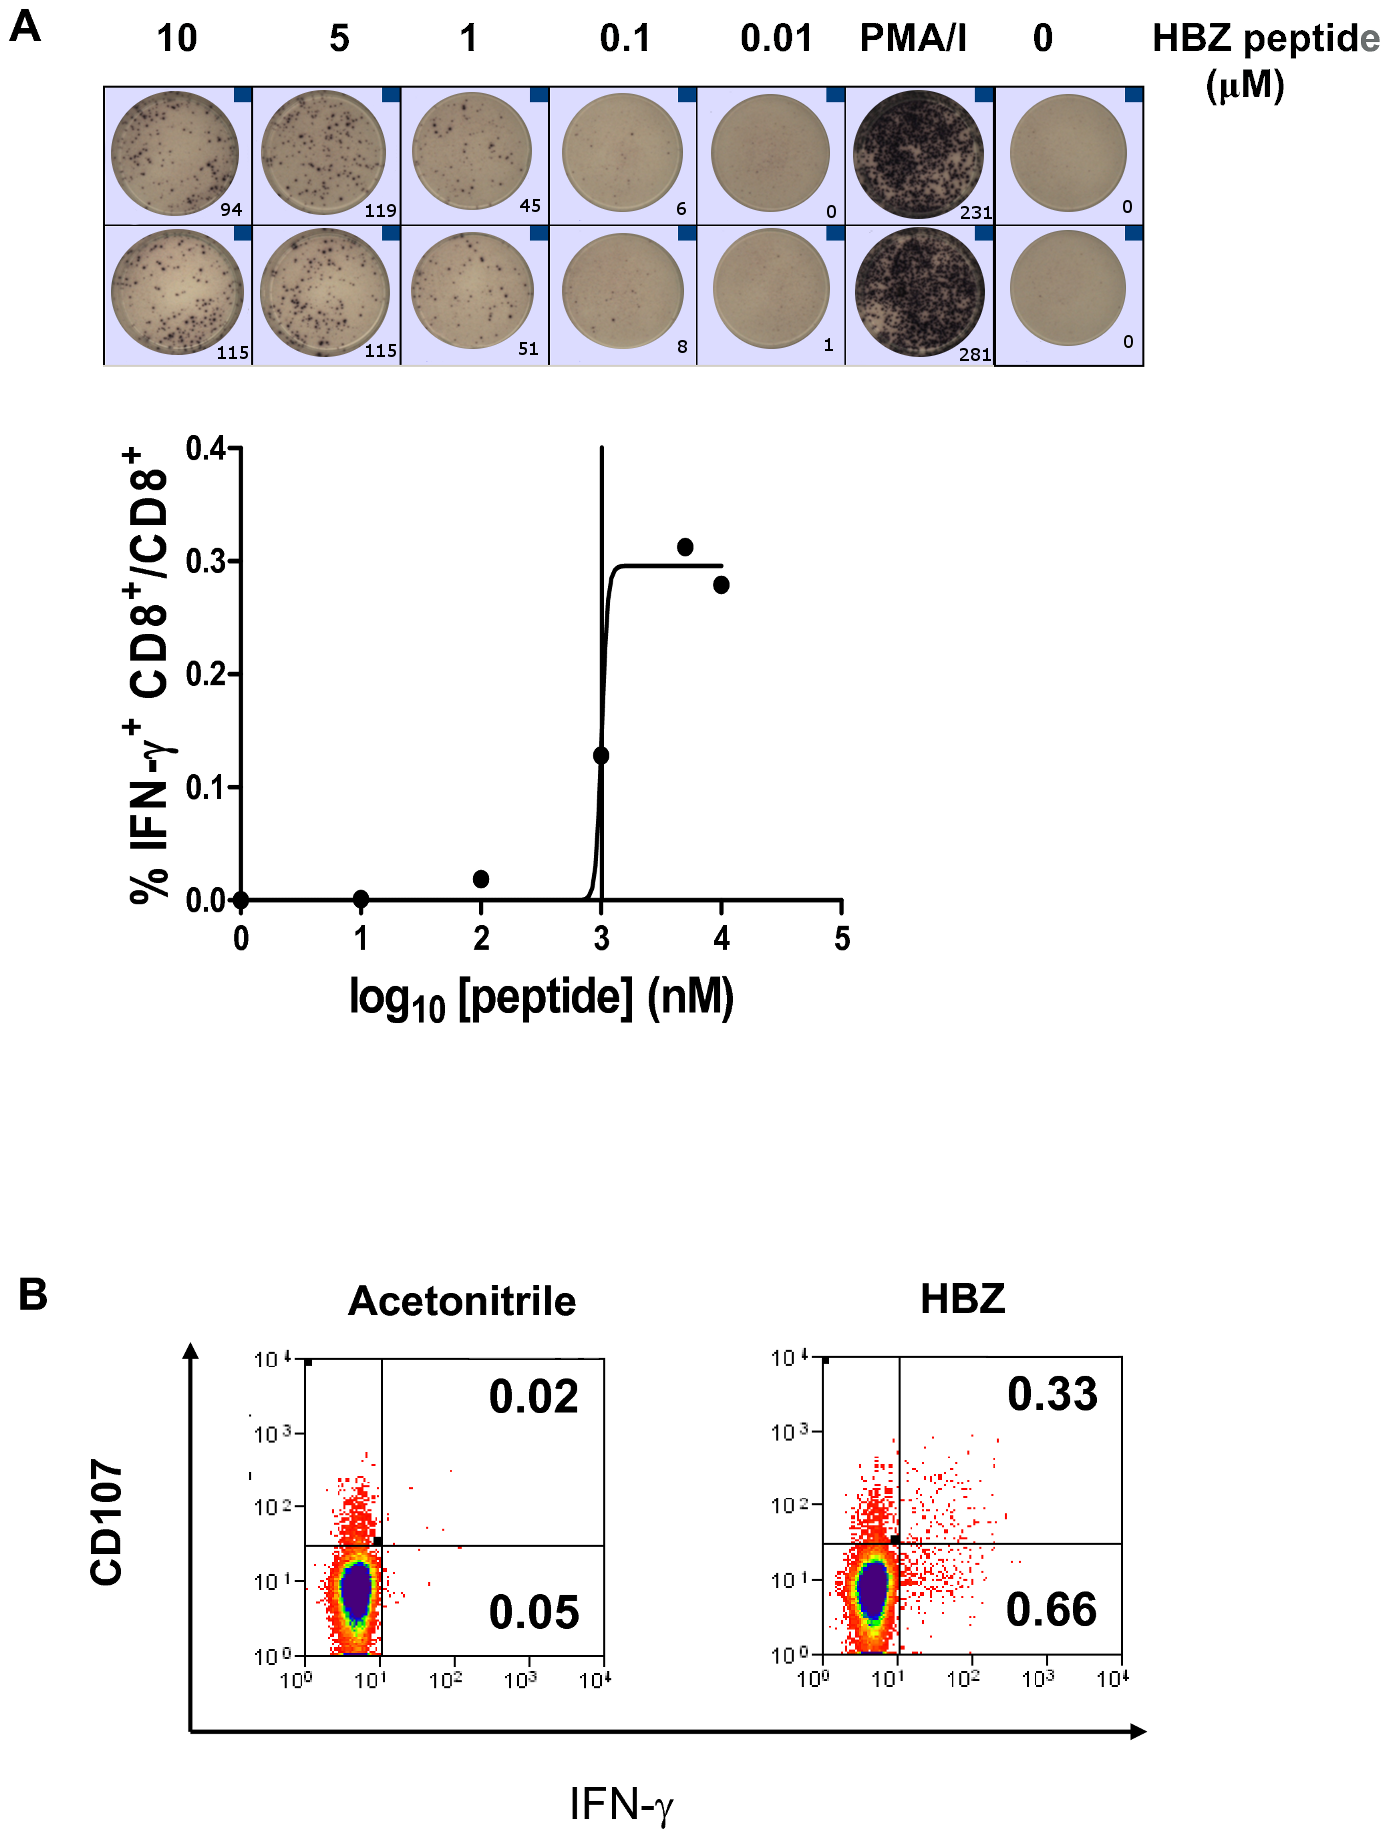 HBZ-specific CD8<sup>+</sup> T cells are directly detectable ex vivo.